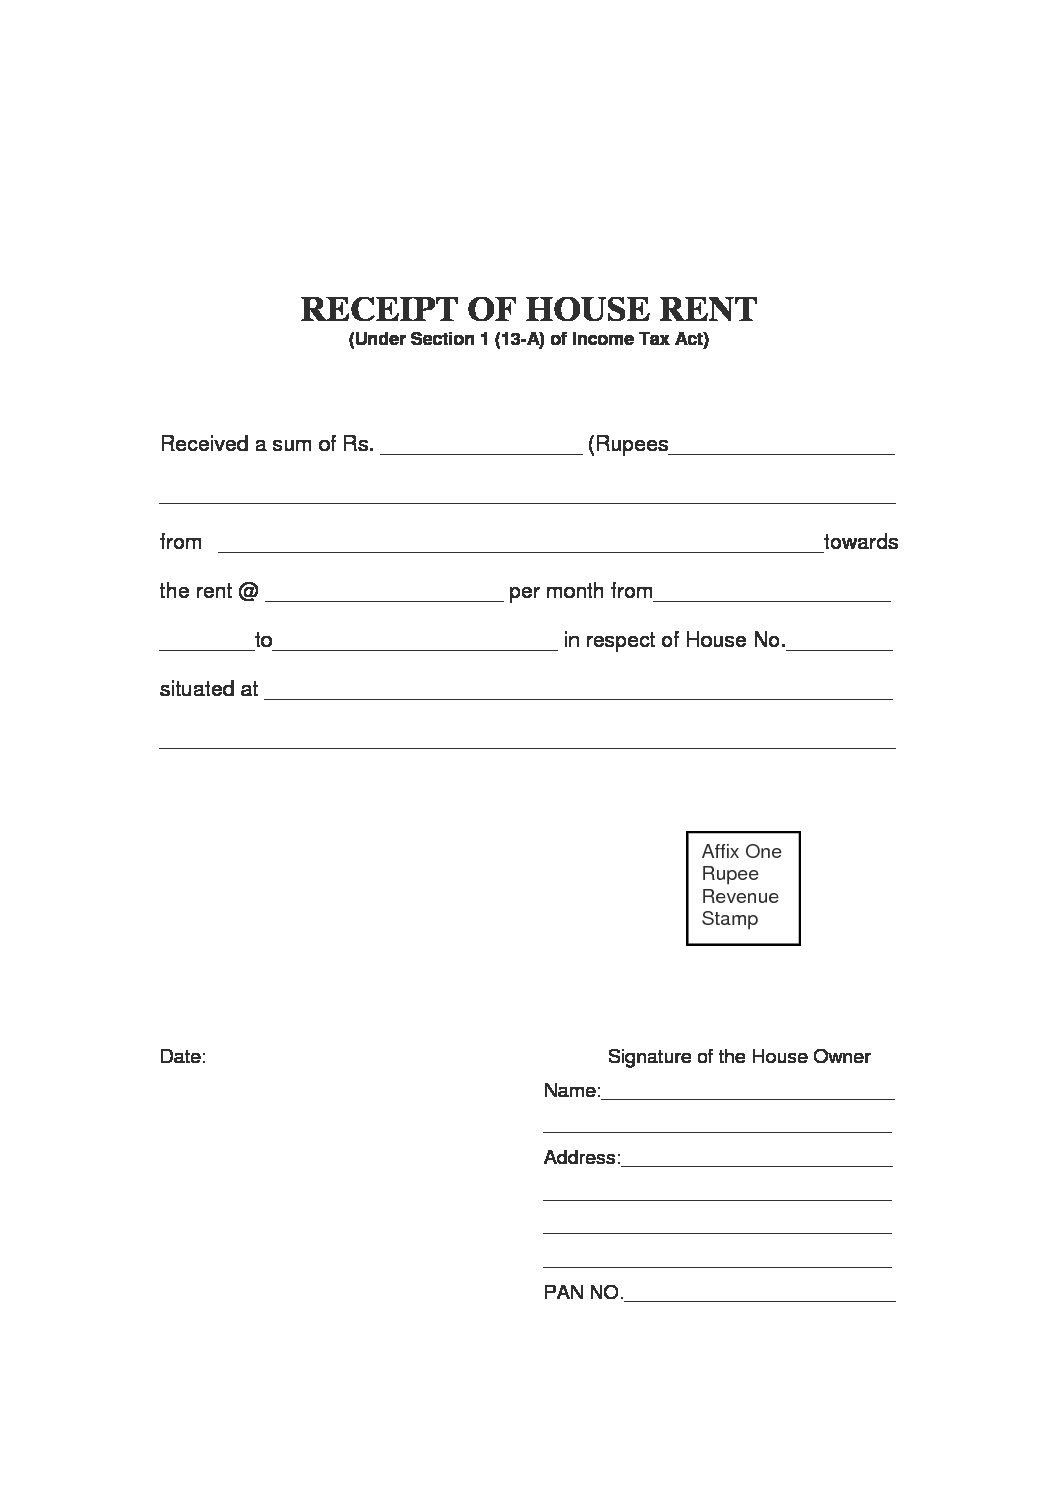 doc landlord rent receipt ontario landlord and tenant doc1380782 landlord rent receipt ontario landlord and tenant landlord rent receipt